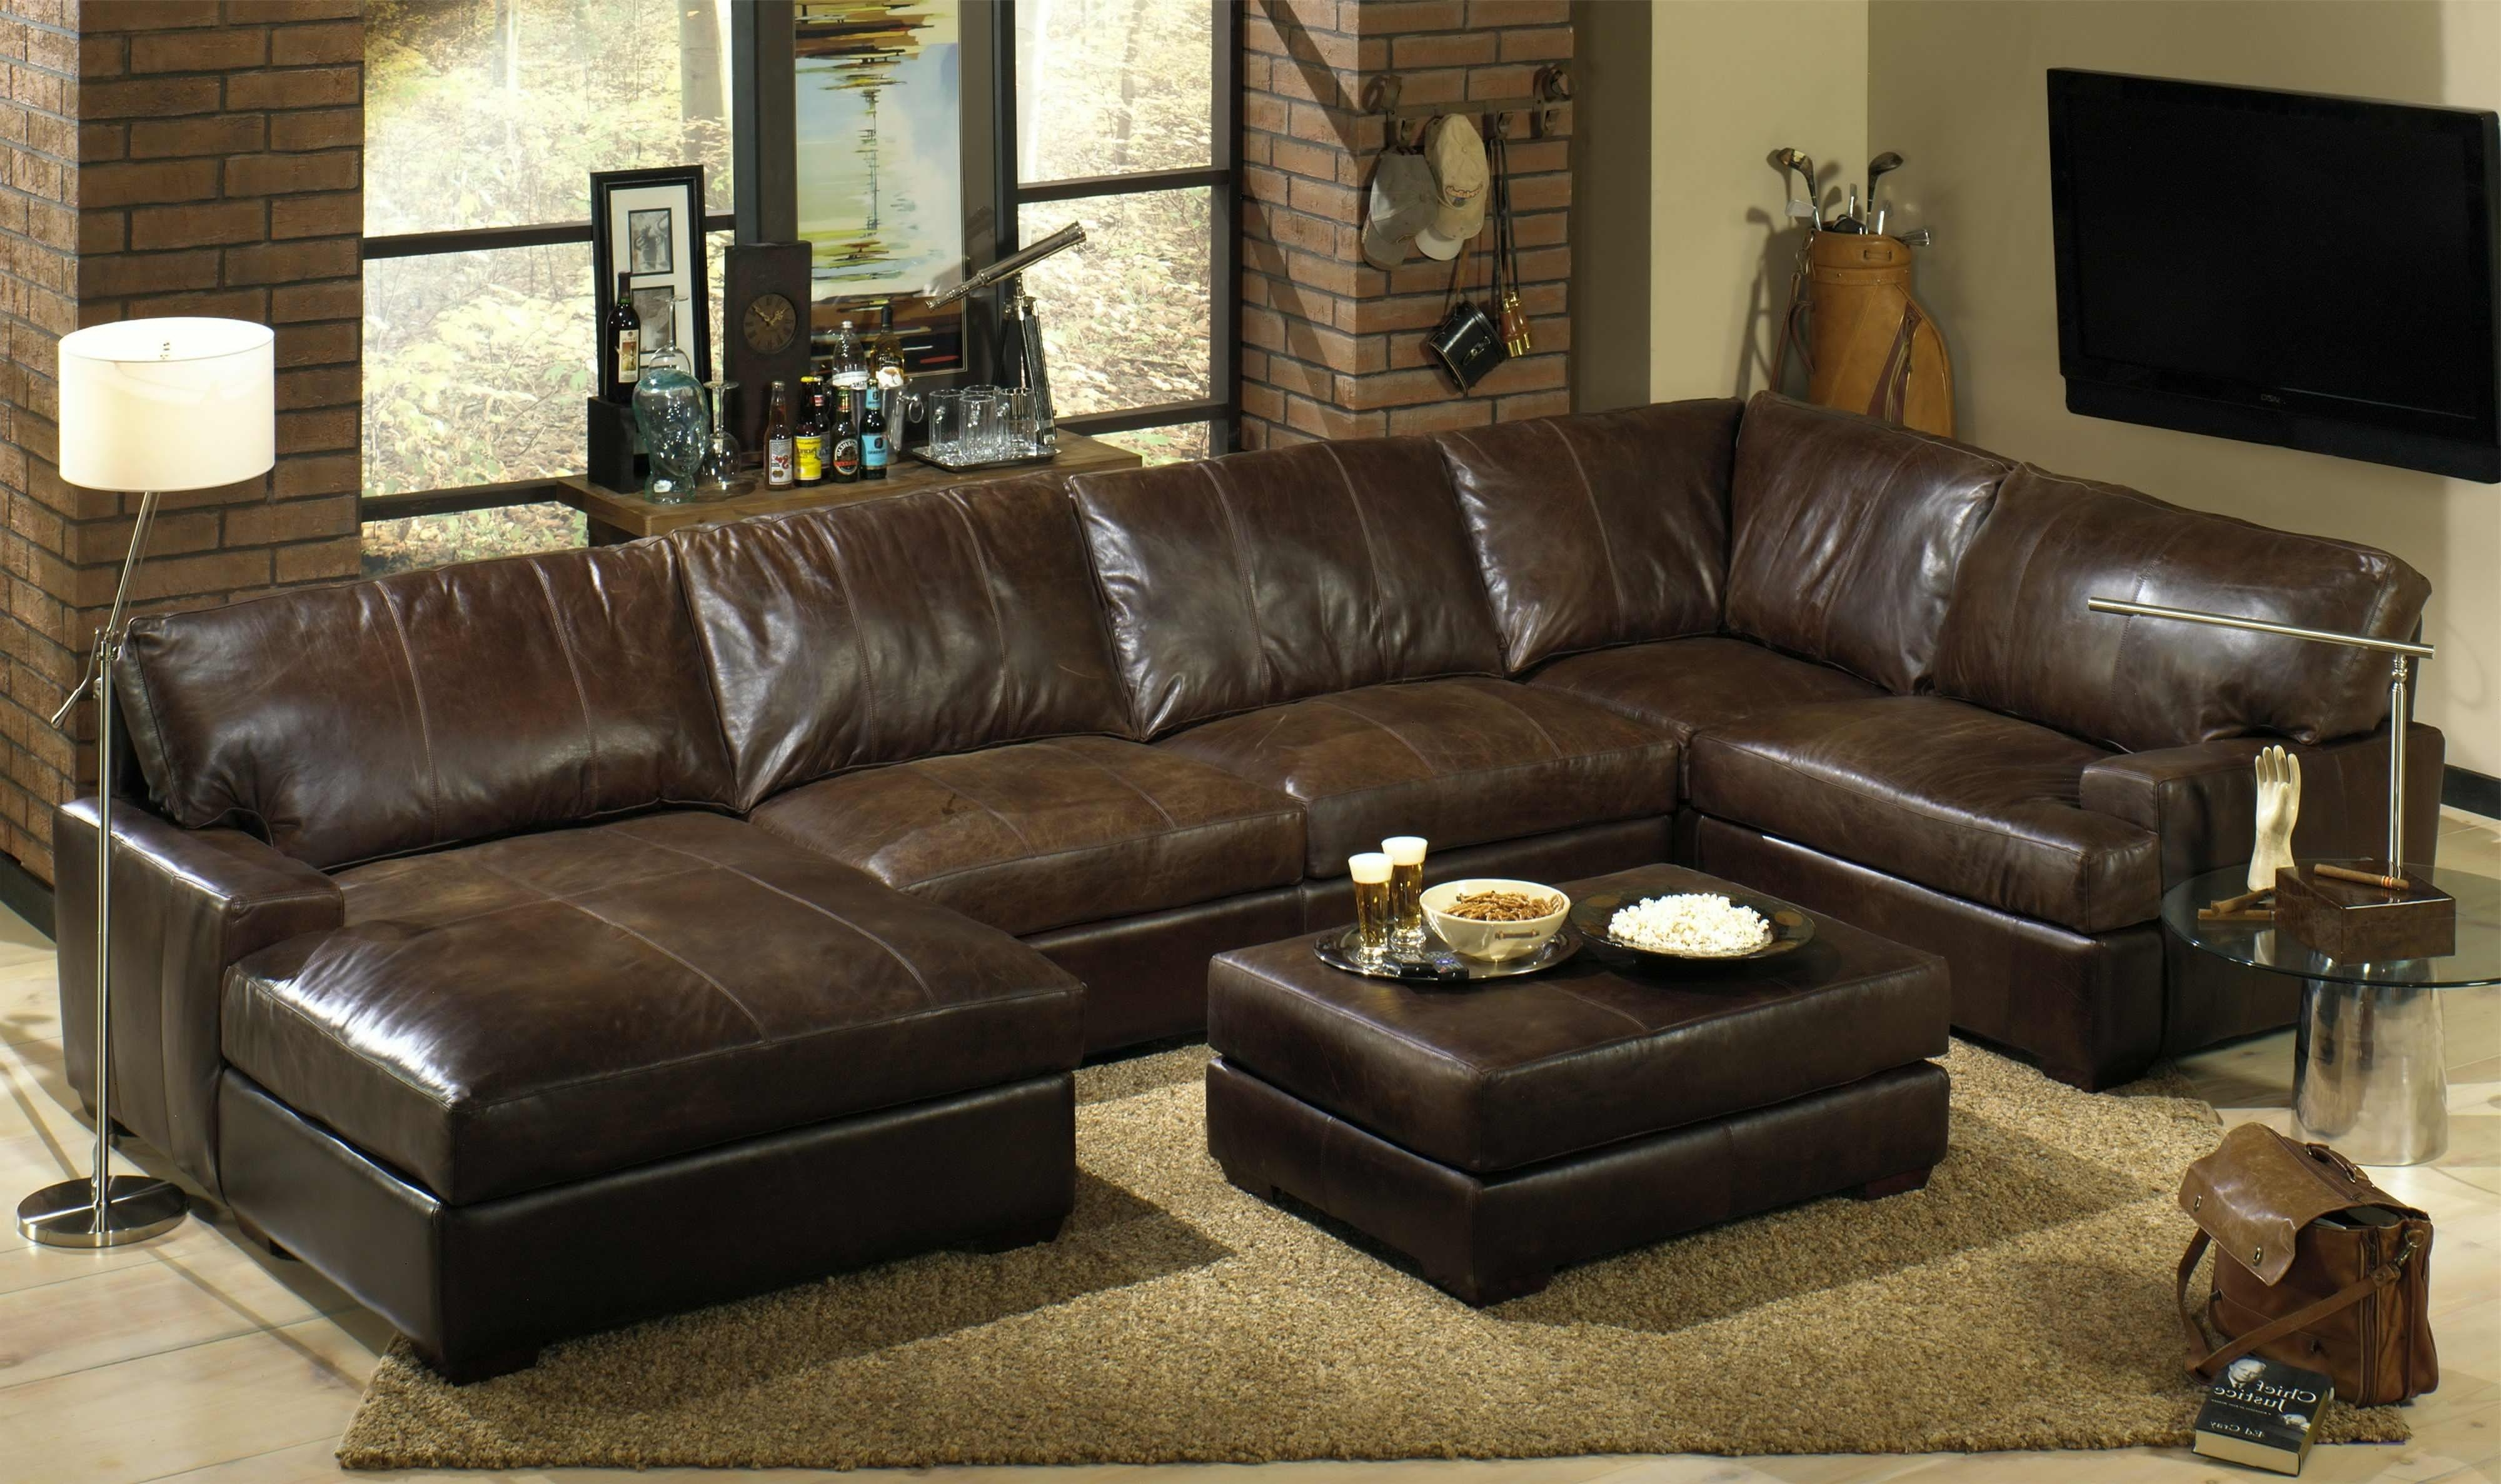 Leather Loveseat Recliner Leather Couches Clearance Leather Corner With Recent U Shaped Leather Sectional Sofas (View 6 of 15)